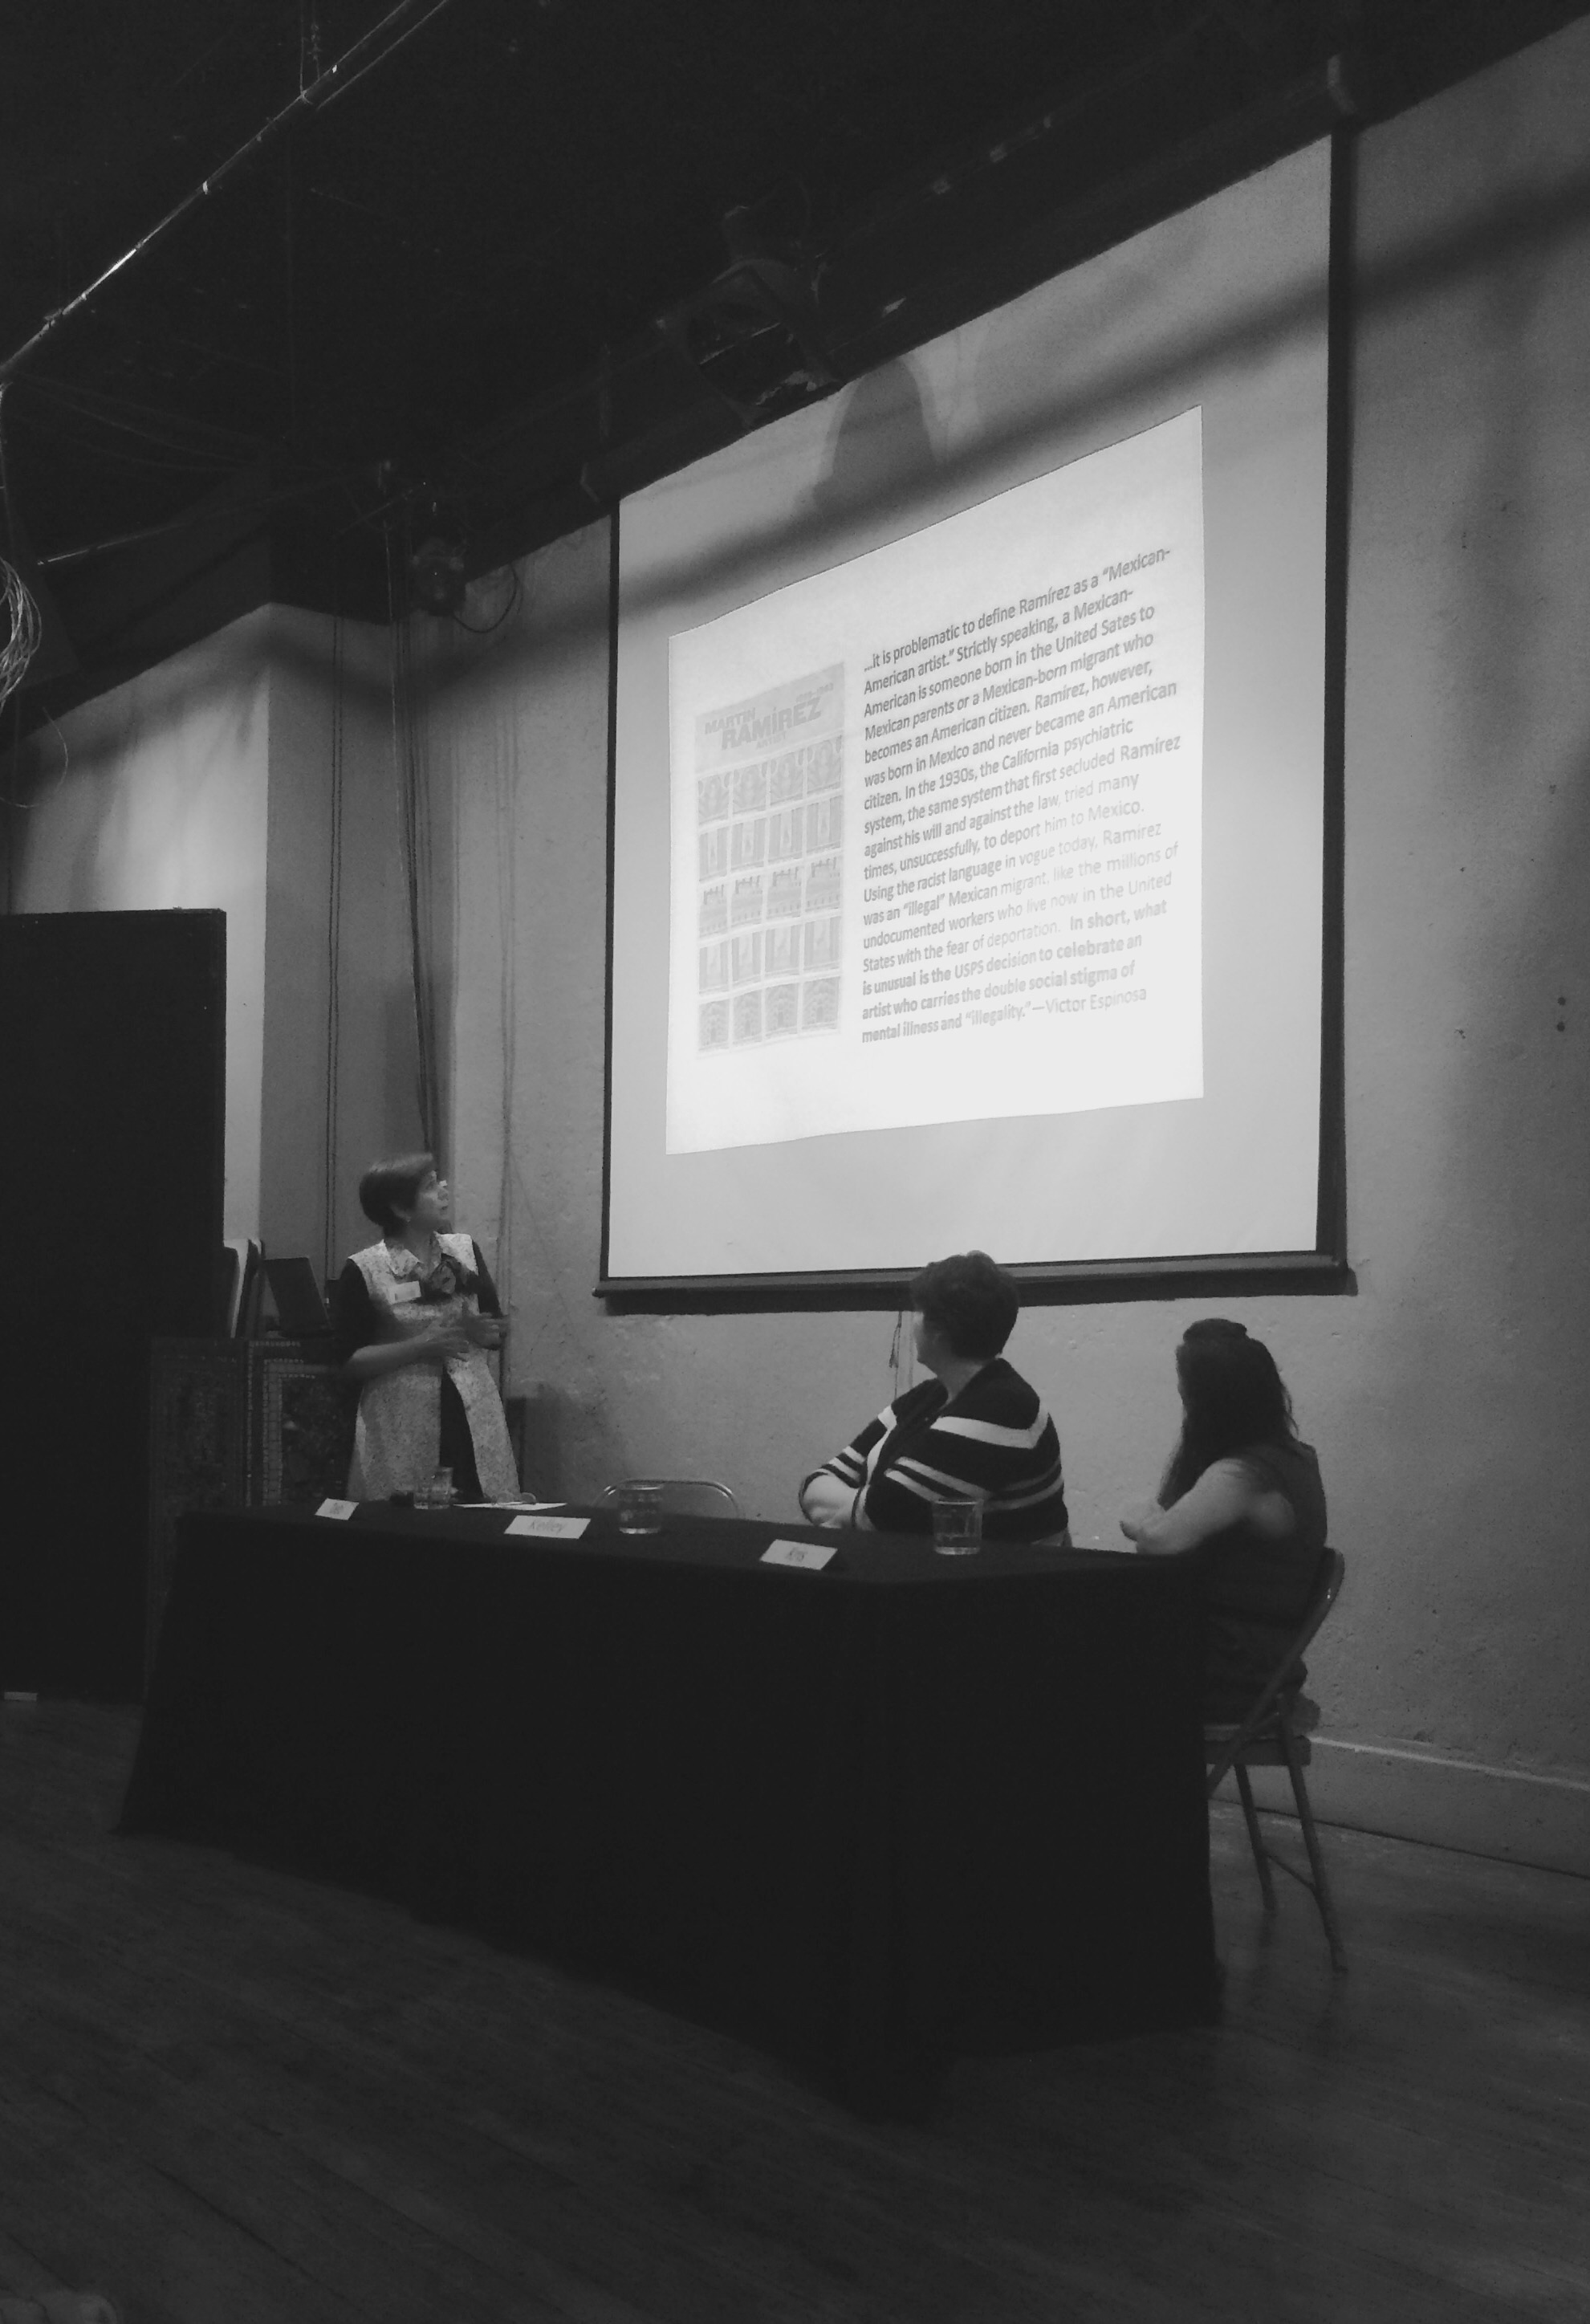 Deb discussing the challenge and dishonesty of labeling and claiming ownership to Martin Ramirez as a Mexican American outsider artist.